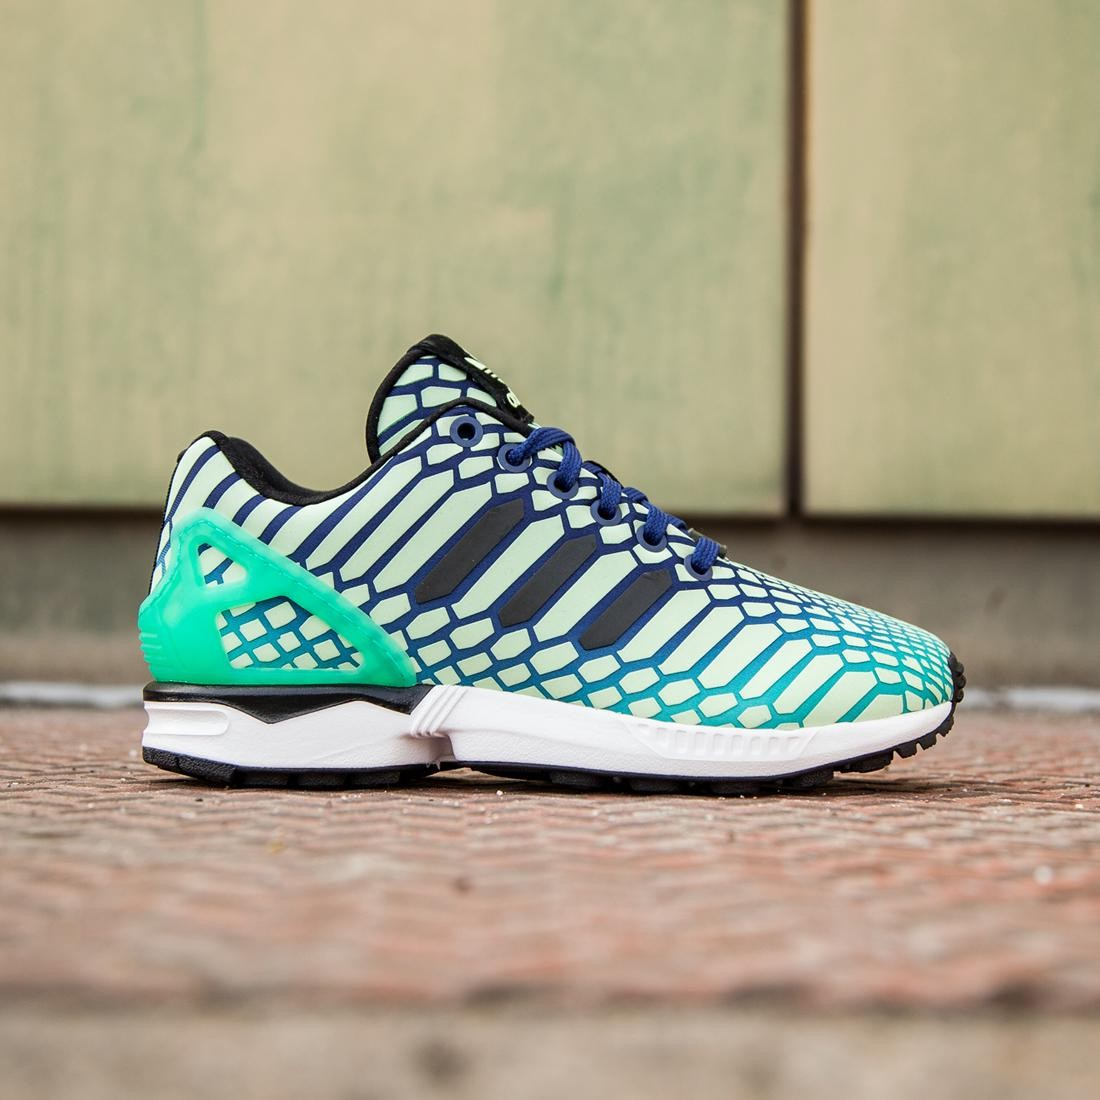 796c9a4dccc8 Adidas Big Kids ZX Flux green shock mint lush ink white